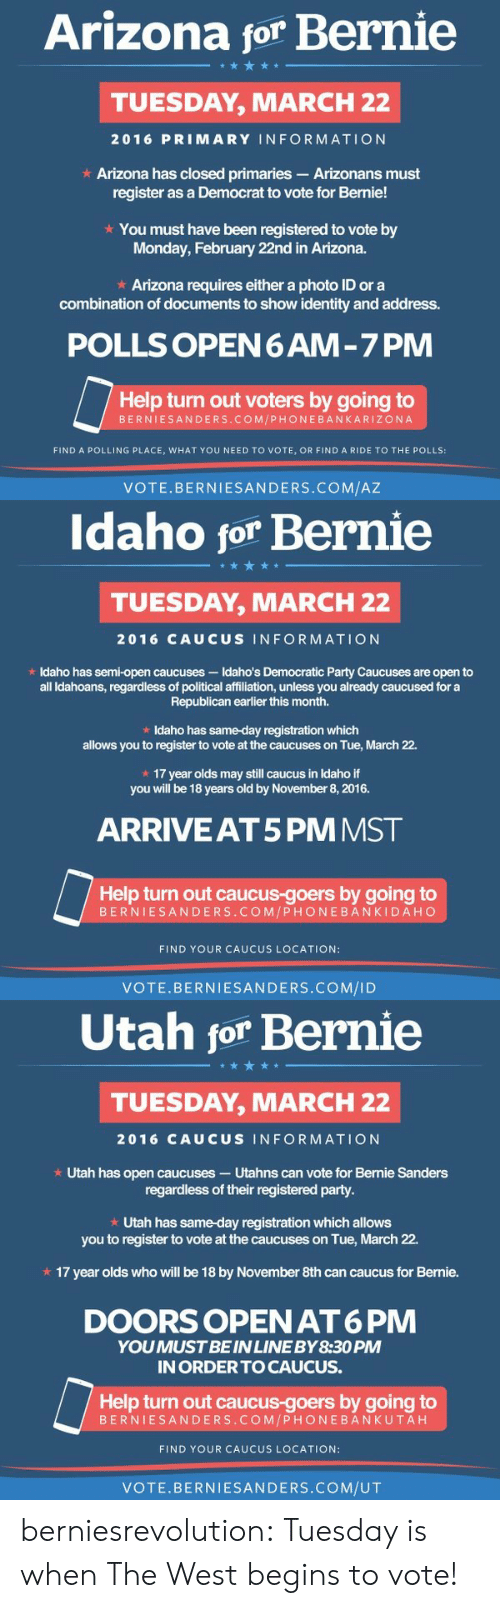 The Polls: Arizona for Bernie  TUESDAY, MARCH 22  2016 PRIMARY INFORMATION  Arizona has closed primaries- Arizonans must  register as a Democrat to vote for Bernie!  * You must have been registered to vote by  Monday, February 22nd in Arizona.  * Arizona requires either a photo ID or a  combination of documents to show identity and address.  POLLS OPEN6AM-7 PM  Help turn out voters by going to  BERNIESANDERS.COM/PHONEBANKARIZONA  FIND A POLLING PLACE, WHAT YOU NEED TO VOTE, OR FIND A RIDE TO THE POLLS:  VOTE.BERNIESANDERS.COM/AZ   Idaho for Bernie  TUESDAY, MARCH 22  2016 CAUCUS INFORMATION  t Idaho has semi-open caucuses-Idaho's Democratic Party Caucuses are open to  all Idahoans, regardless of political affiliation, unless you already caucused for a  Republican earlier this month.  Idaho has same-day registration which  allows you to register to vote at the caucuses on Tue, March 22.  17 year olds may still caucus in Idaho if  you will be 18 years old by November 8, 2016.  ARRIVEAT5 PM MST  Help turn out caucus-goers by going to  BERNIESANDERS. COM/PHONEBANKIDAHC  FIND YOUR CAUCUS LOCATION:  VOTE.BERNIESANDERS.COM/ID   Utah for Bernie  ム@う傍  TUESDAY, MARCH 22  2016 CAUCUS INFORMATION  * Utah has open caucuses- Utahns can vote for Bernie Sanders  regardless of their registered party  * Utah has same-day registration which allows  you to register to vote at the caucuses on Tue, March 22.  x 17 year olds who will be 18 by November 8th can caucus for Bernie.  DOORS OPEN AT6 PM  YOUMUST BE INLINE BY8:30 PM  IN ORDERTO CAUCUS.  Help turn out caucus-goers by going to  BERNIESANDERS.COM/PHONEBANKUTAH  FIND YOUR CAUCUS LOCATION:  VOTE.BERNIESANDERS.COM/UT berniesrevolution:  Tuesday is when The West begins to vote!